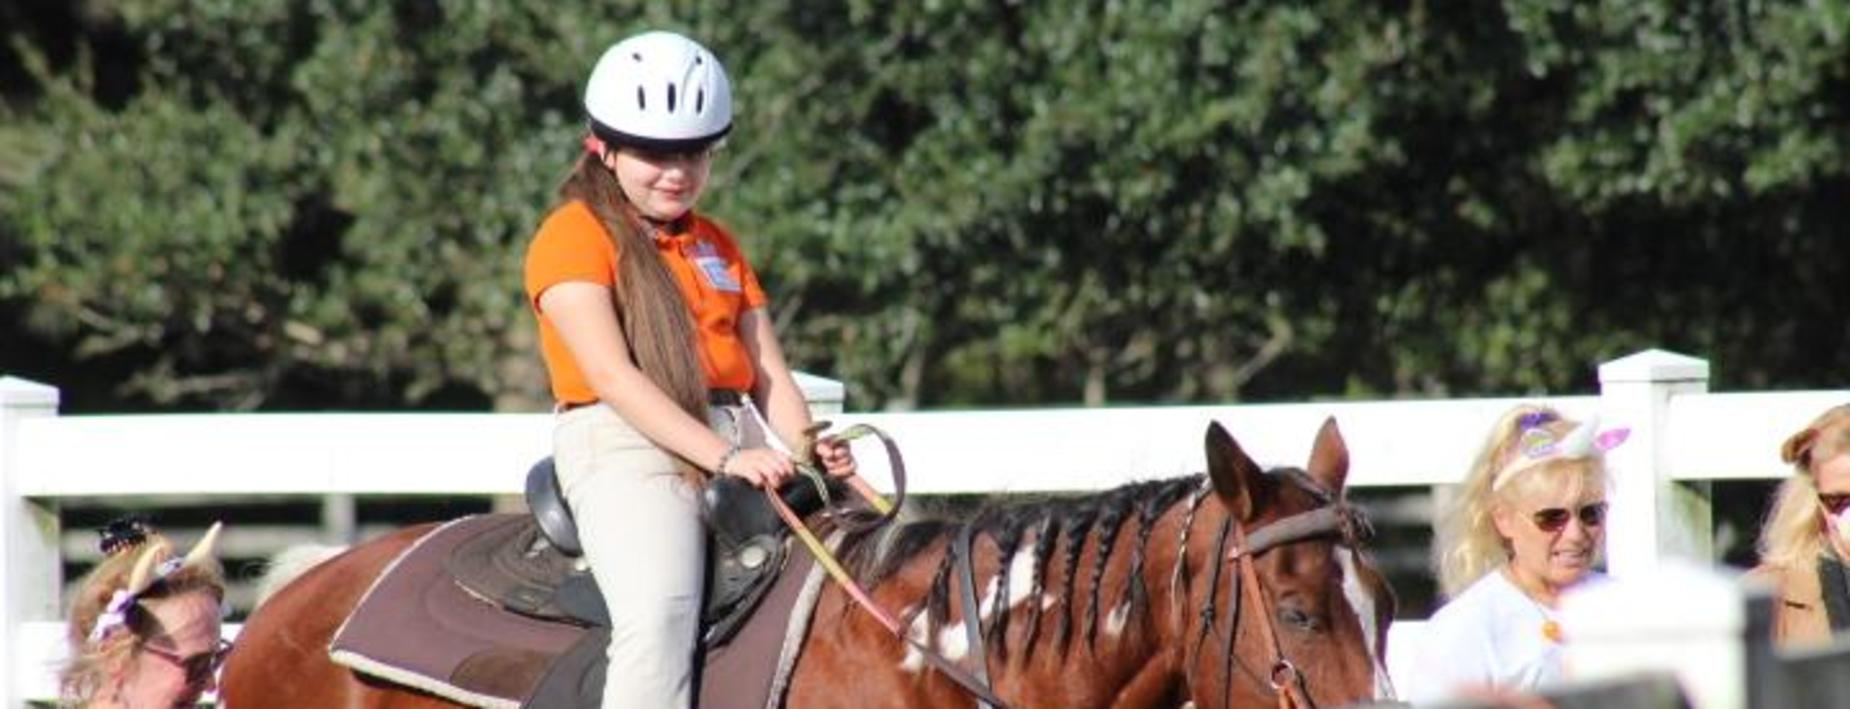 Girl on a horse at Heroes on Horseback